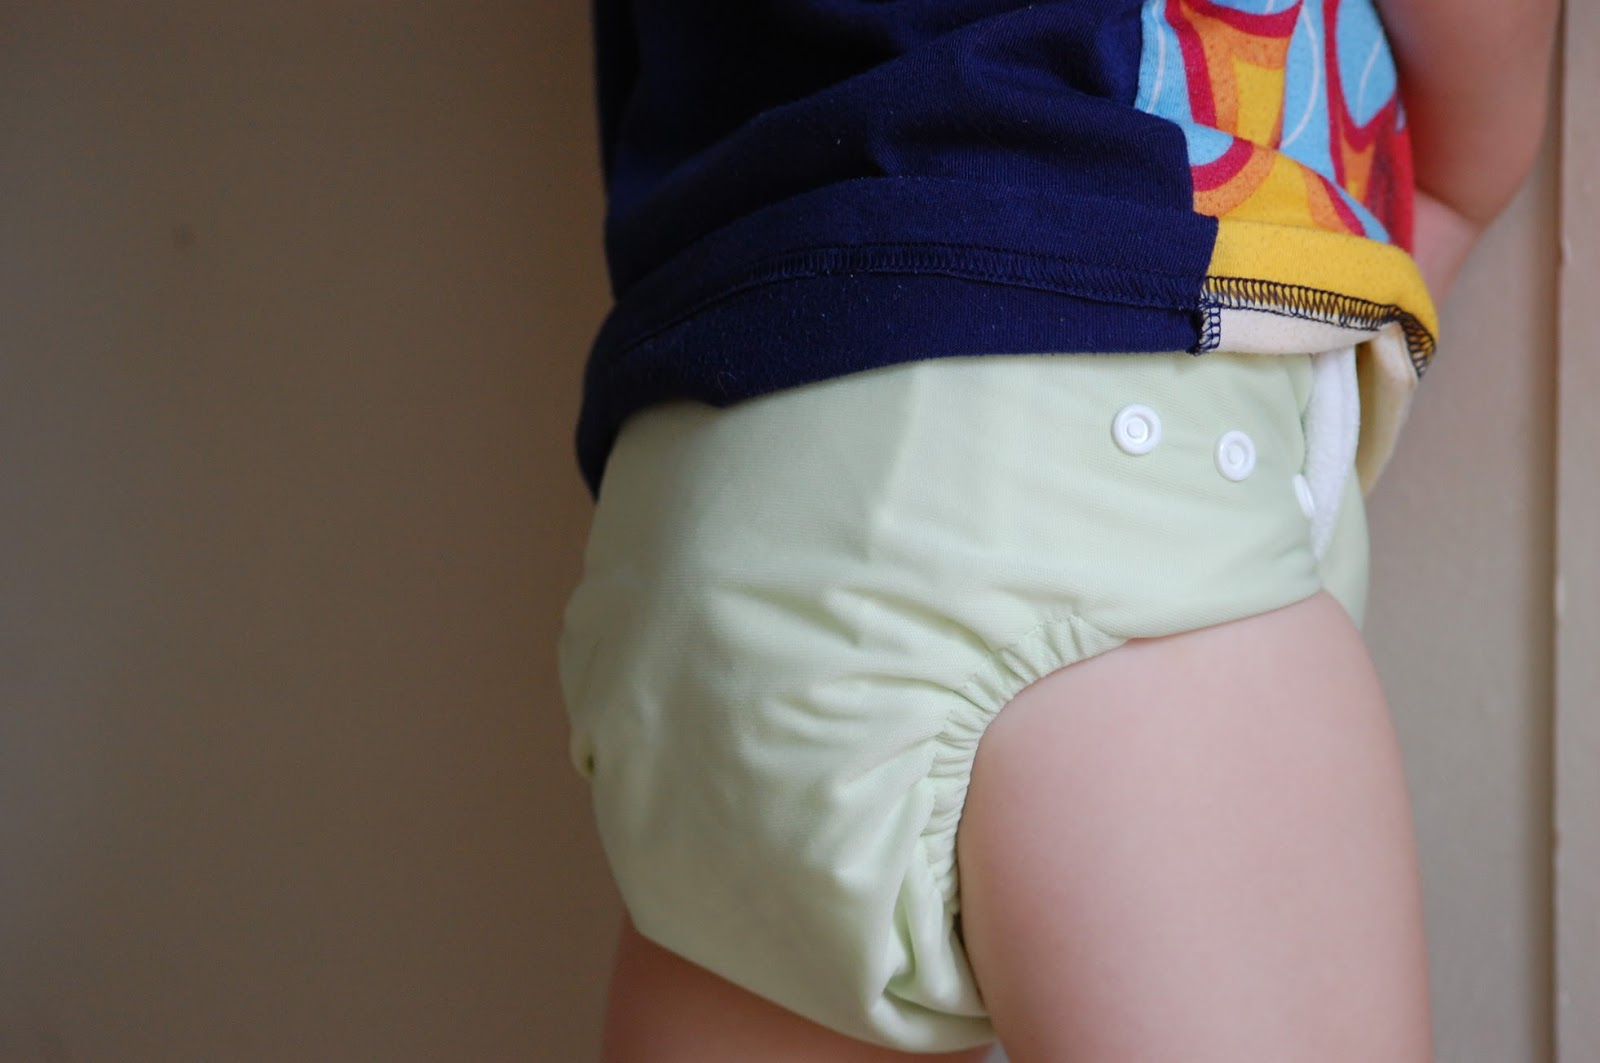 G irls in adult diapers